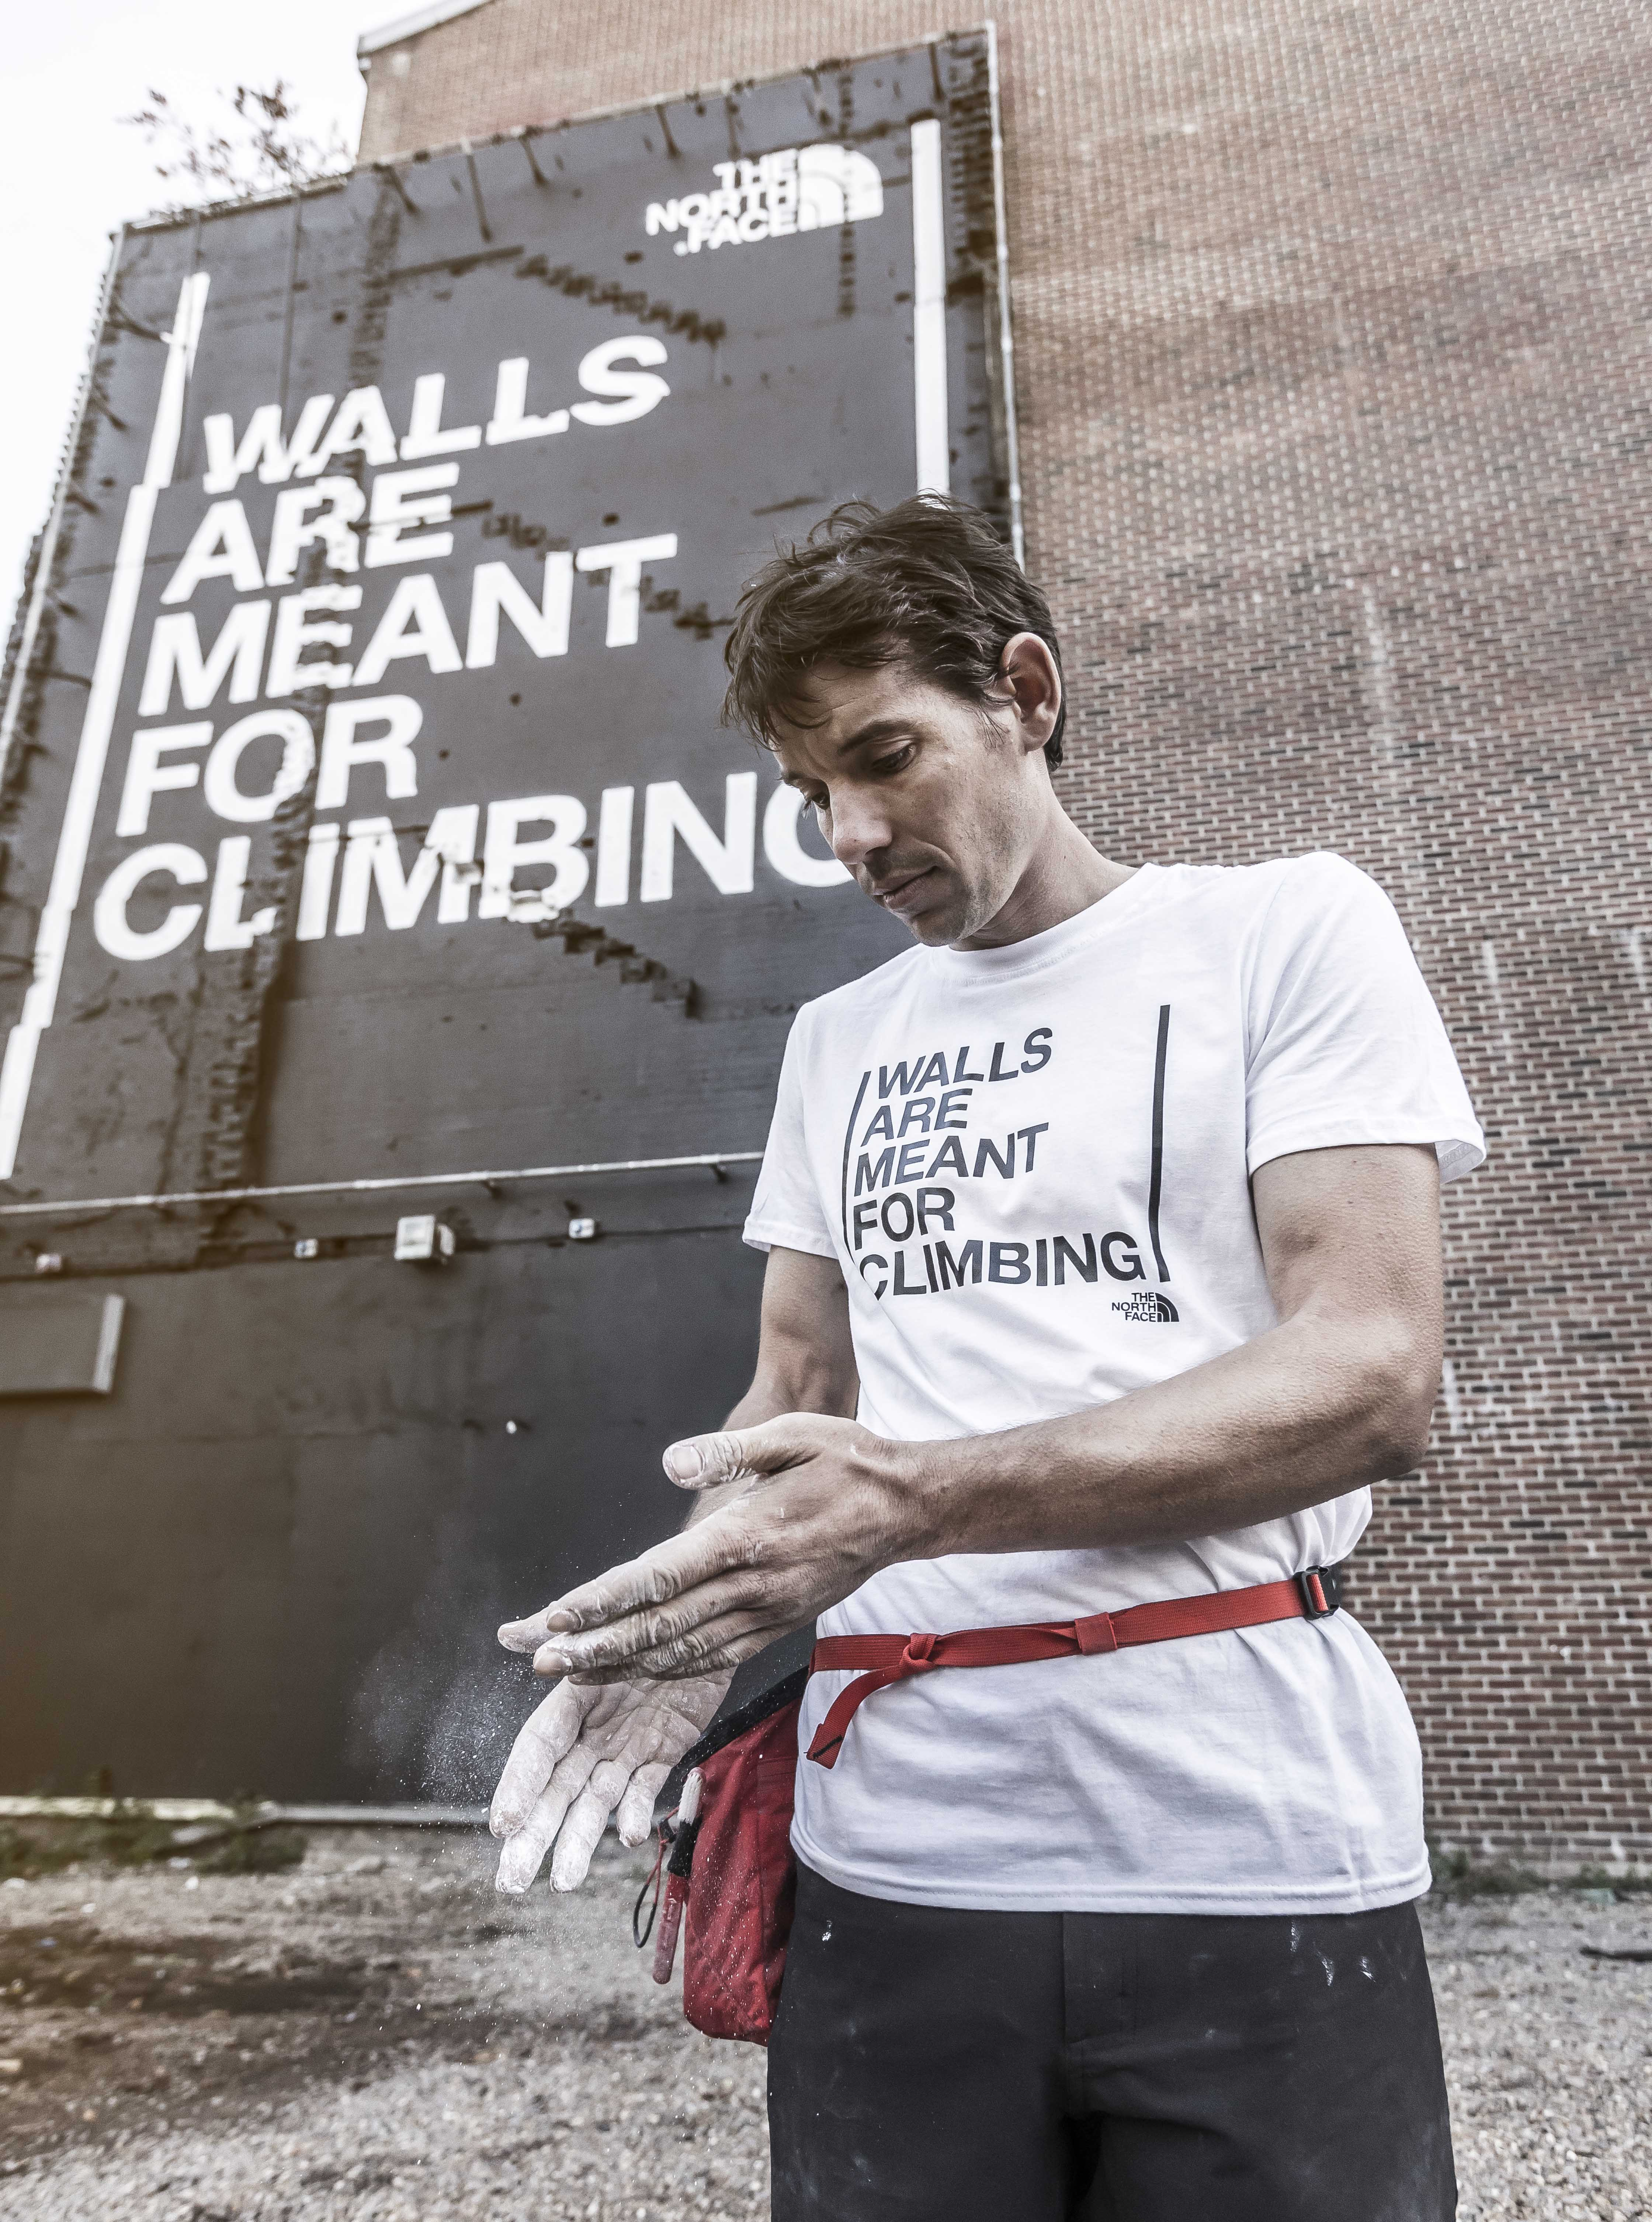 Build The Bear: The North Face Say Walls Are Meant For Climbing